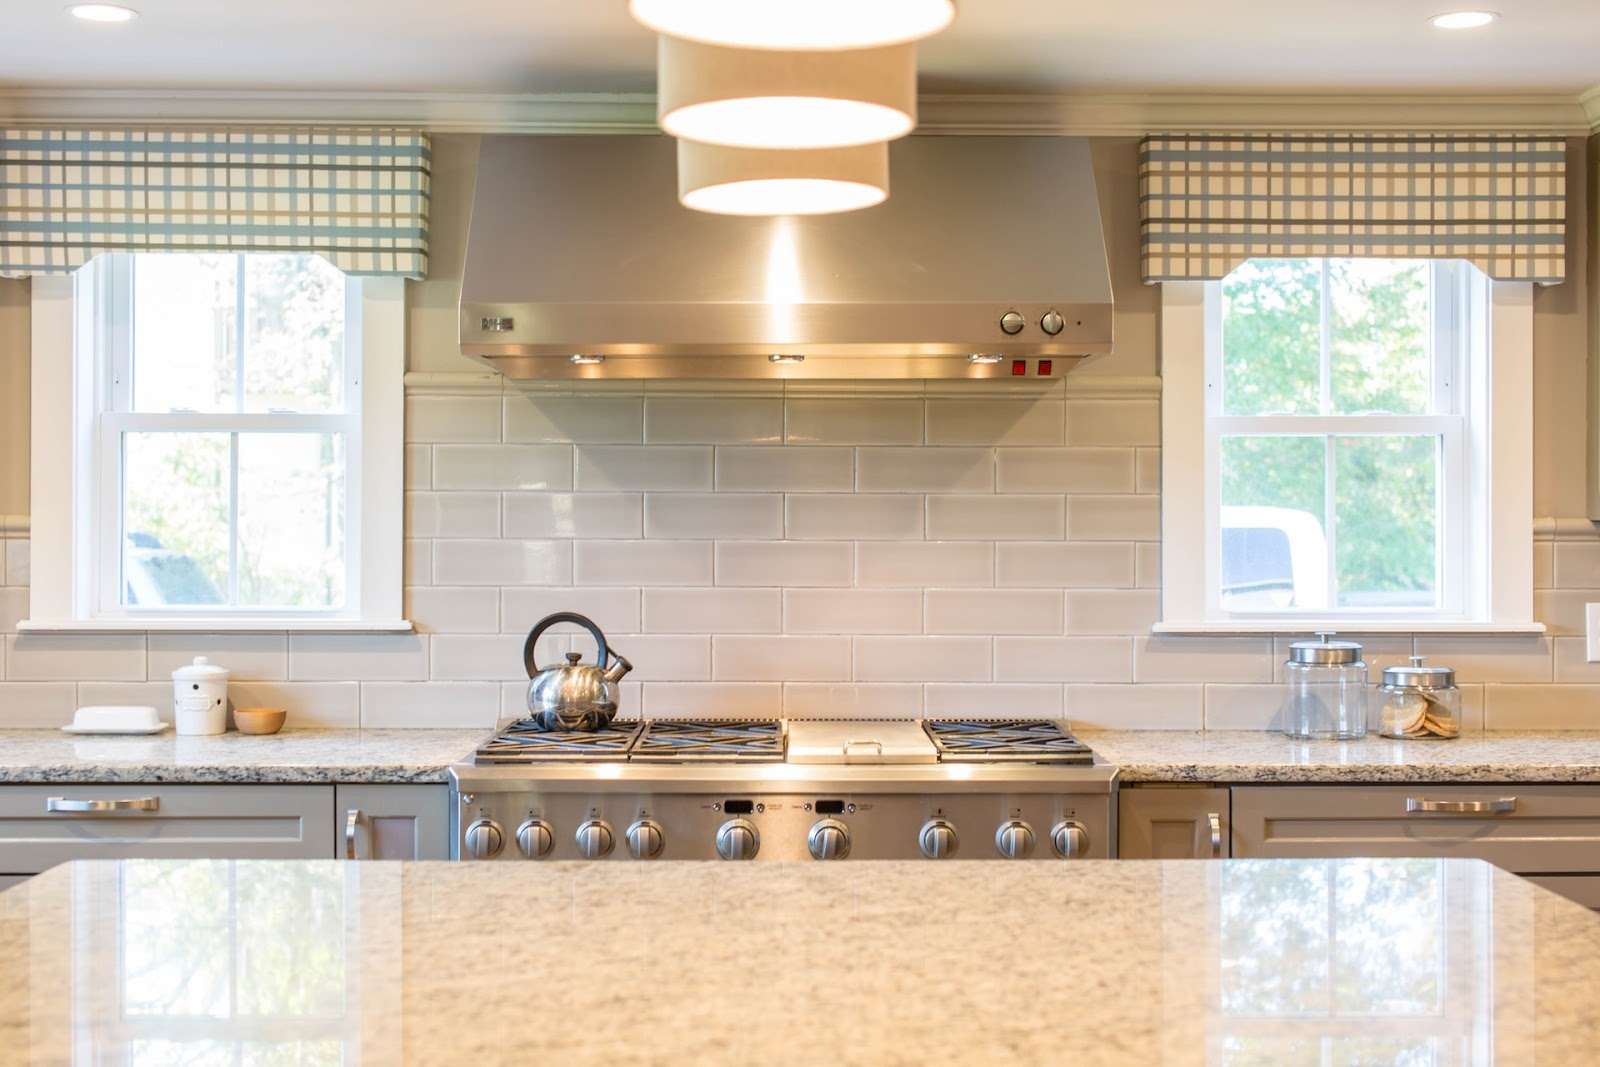 A monochromatic kitchen with statement decor; a light grey and white kitchen with two windows and statement lights